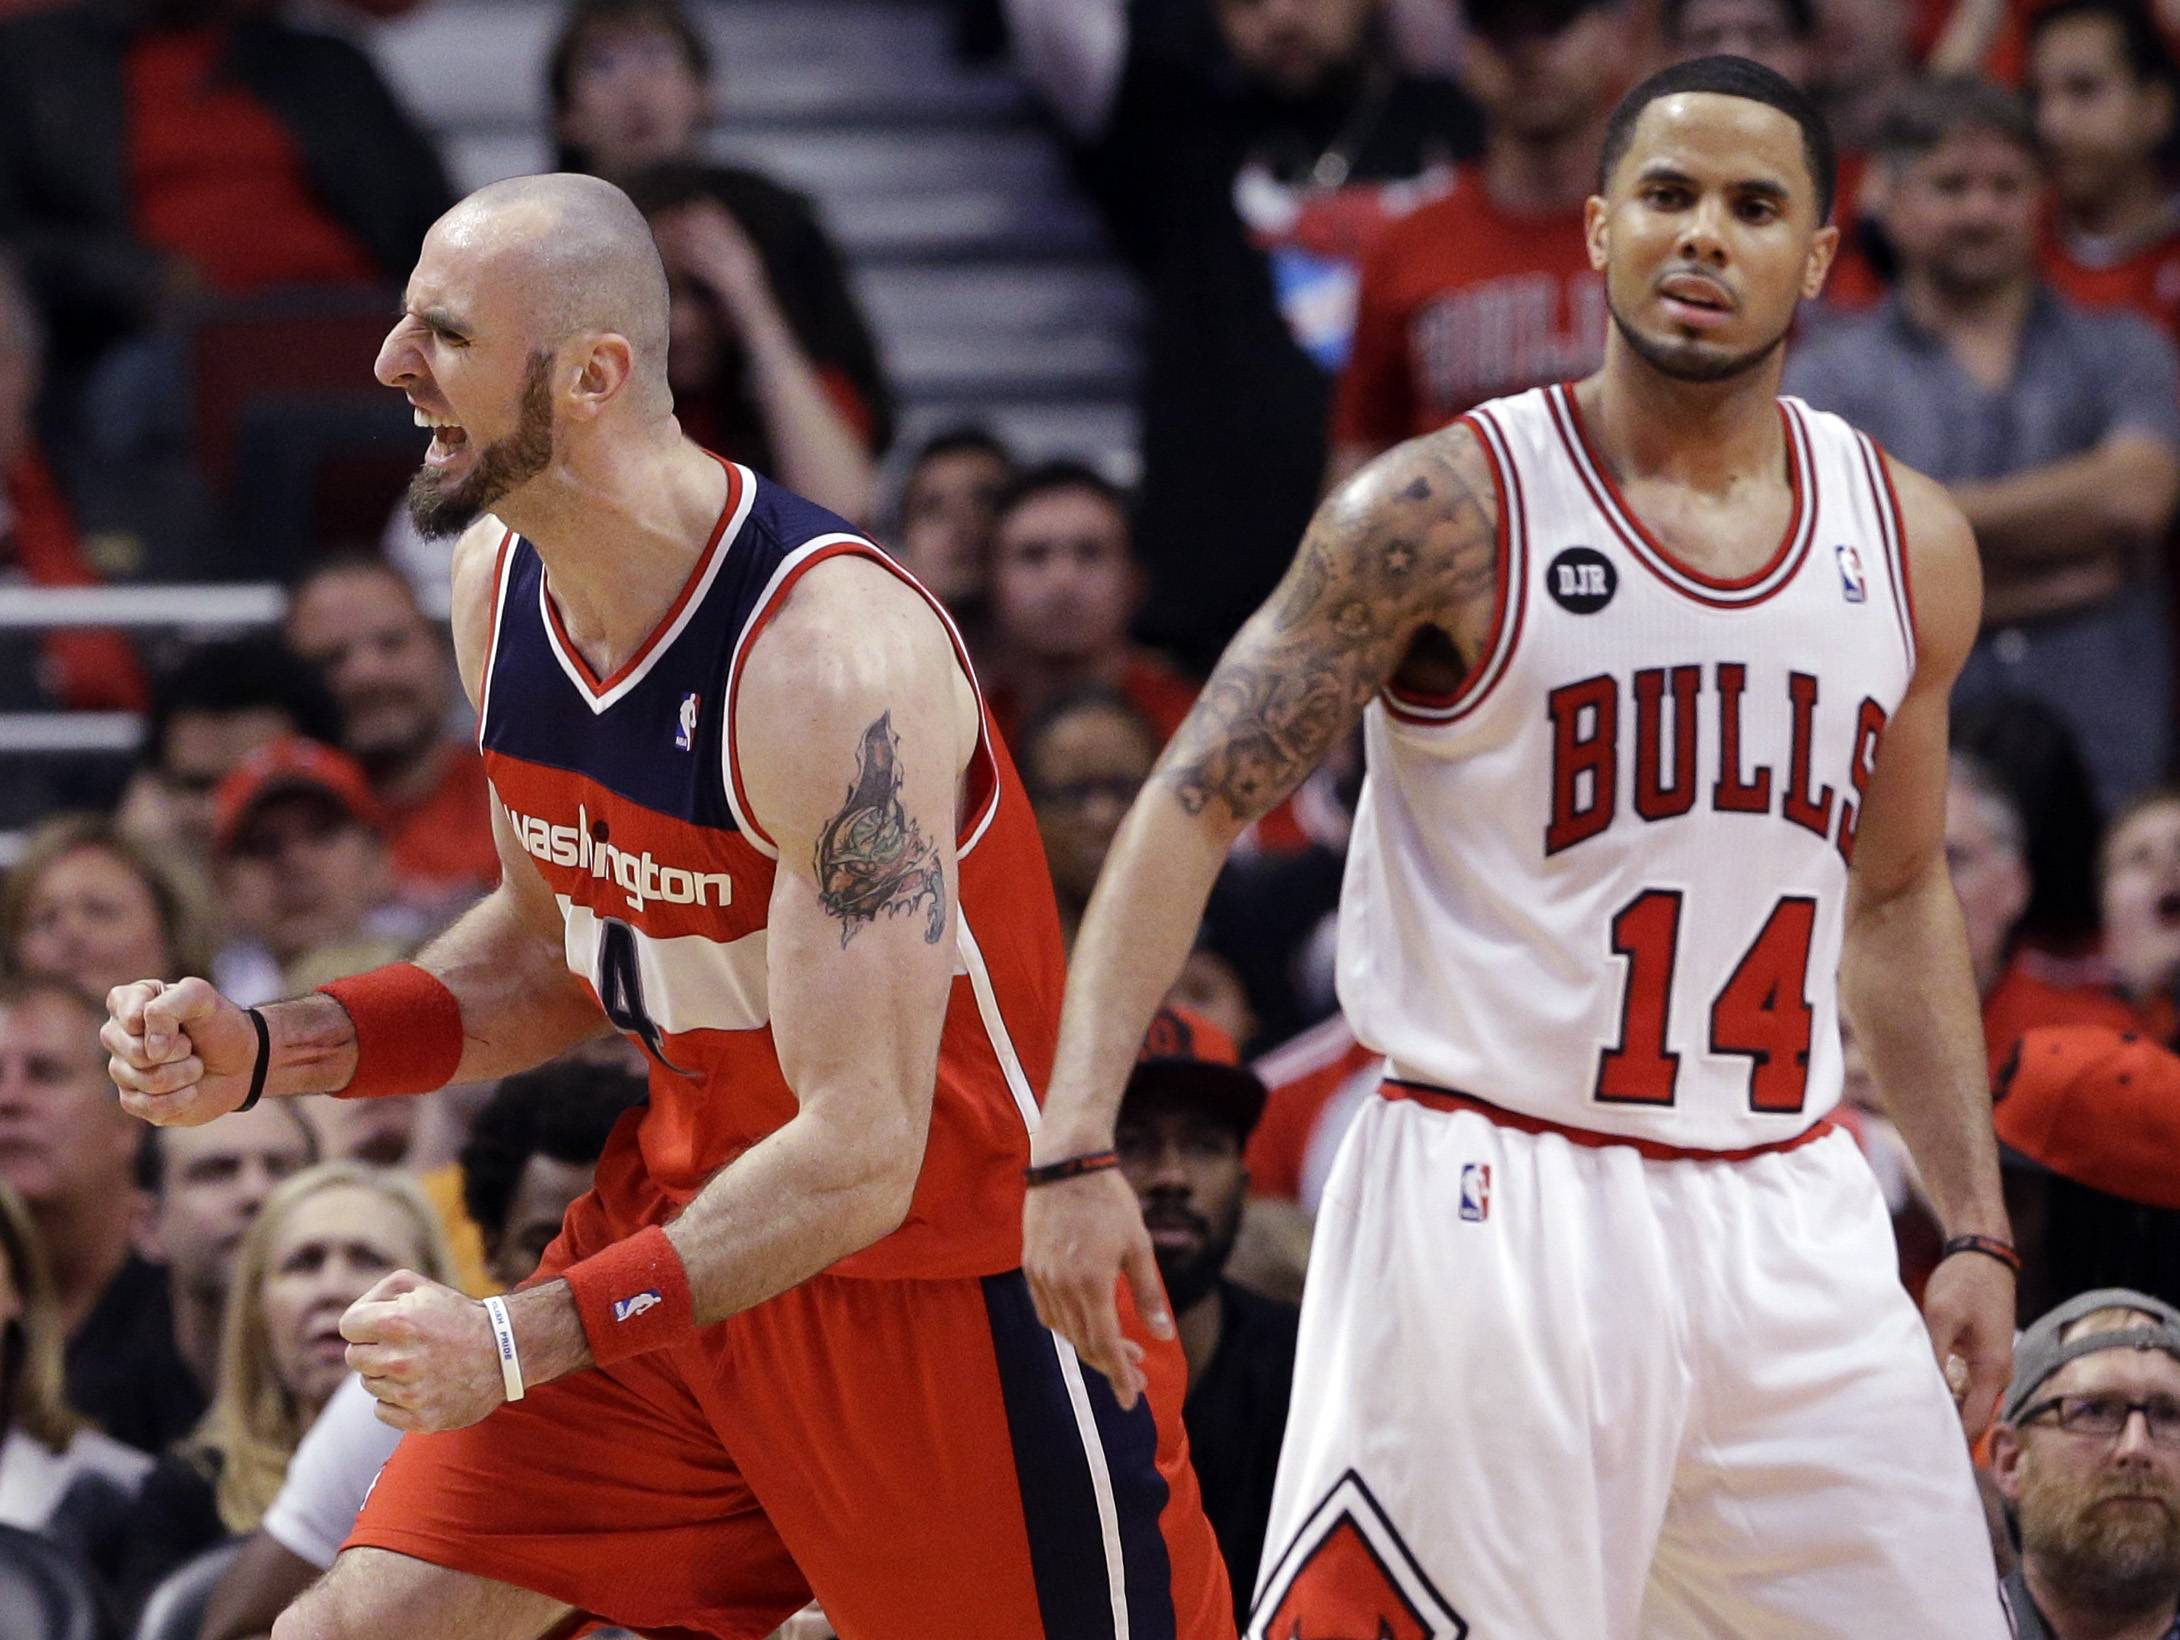 Wizards center Marcin Gortat, left, reacts after scoring a basket as Chicago Bulls guard D.J. Augustin reacts during the second half in Game 1 of an opening-round NBA basketball playoff series in Chicago, Sunday, April 20, 2014. The Wizards won 102-93.